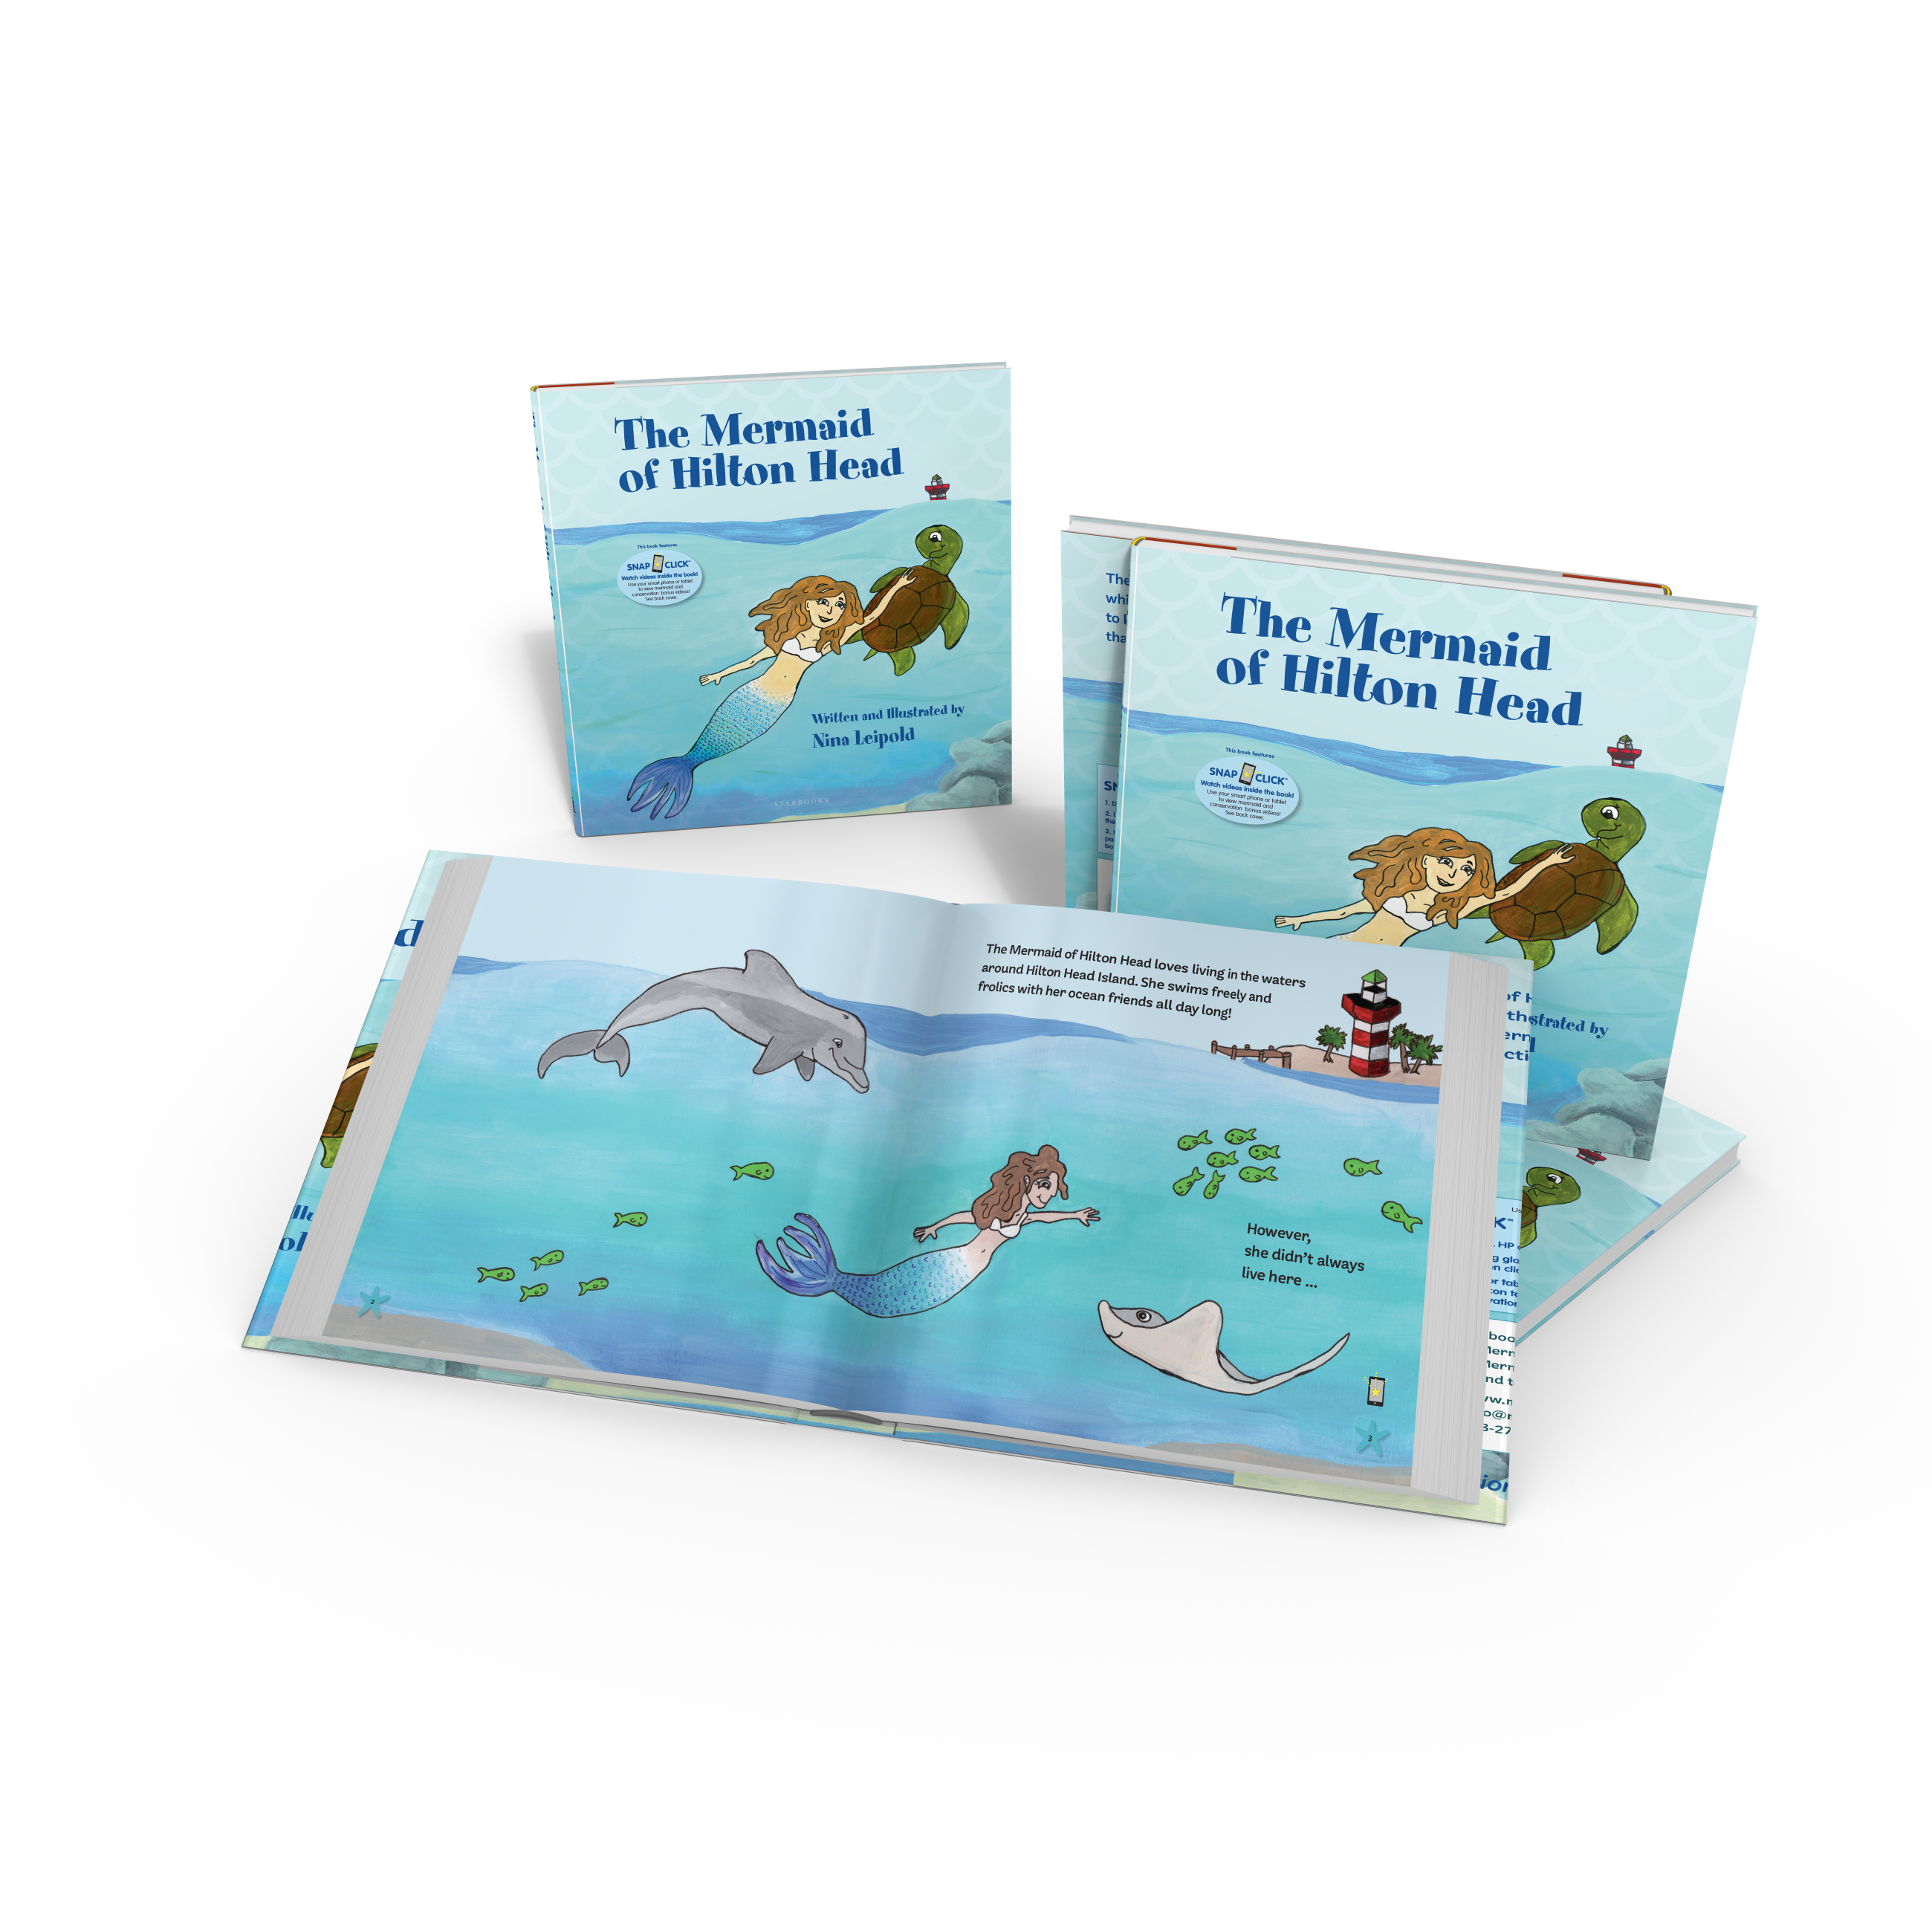 Mermaid Nina swimming: The Mermaid of Hilton Head by Nina Leipold with Augmented Reality Starbooks